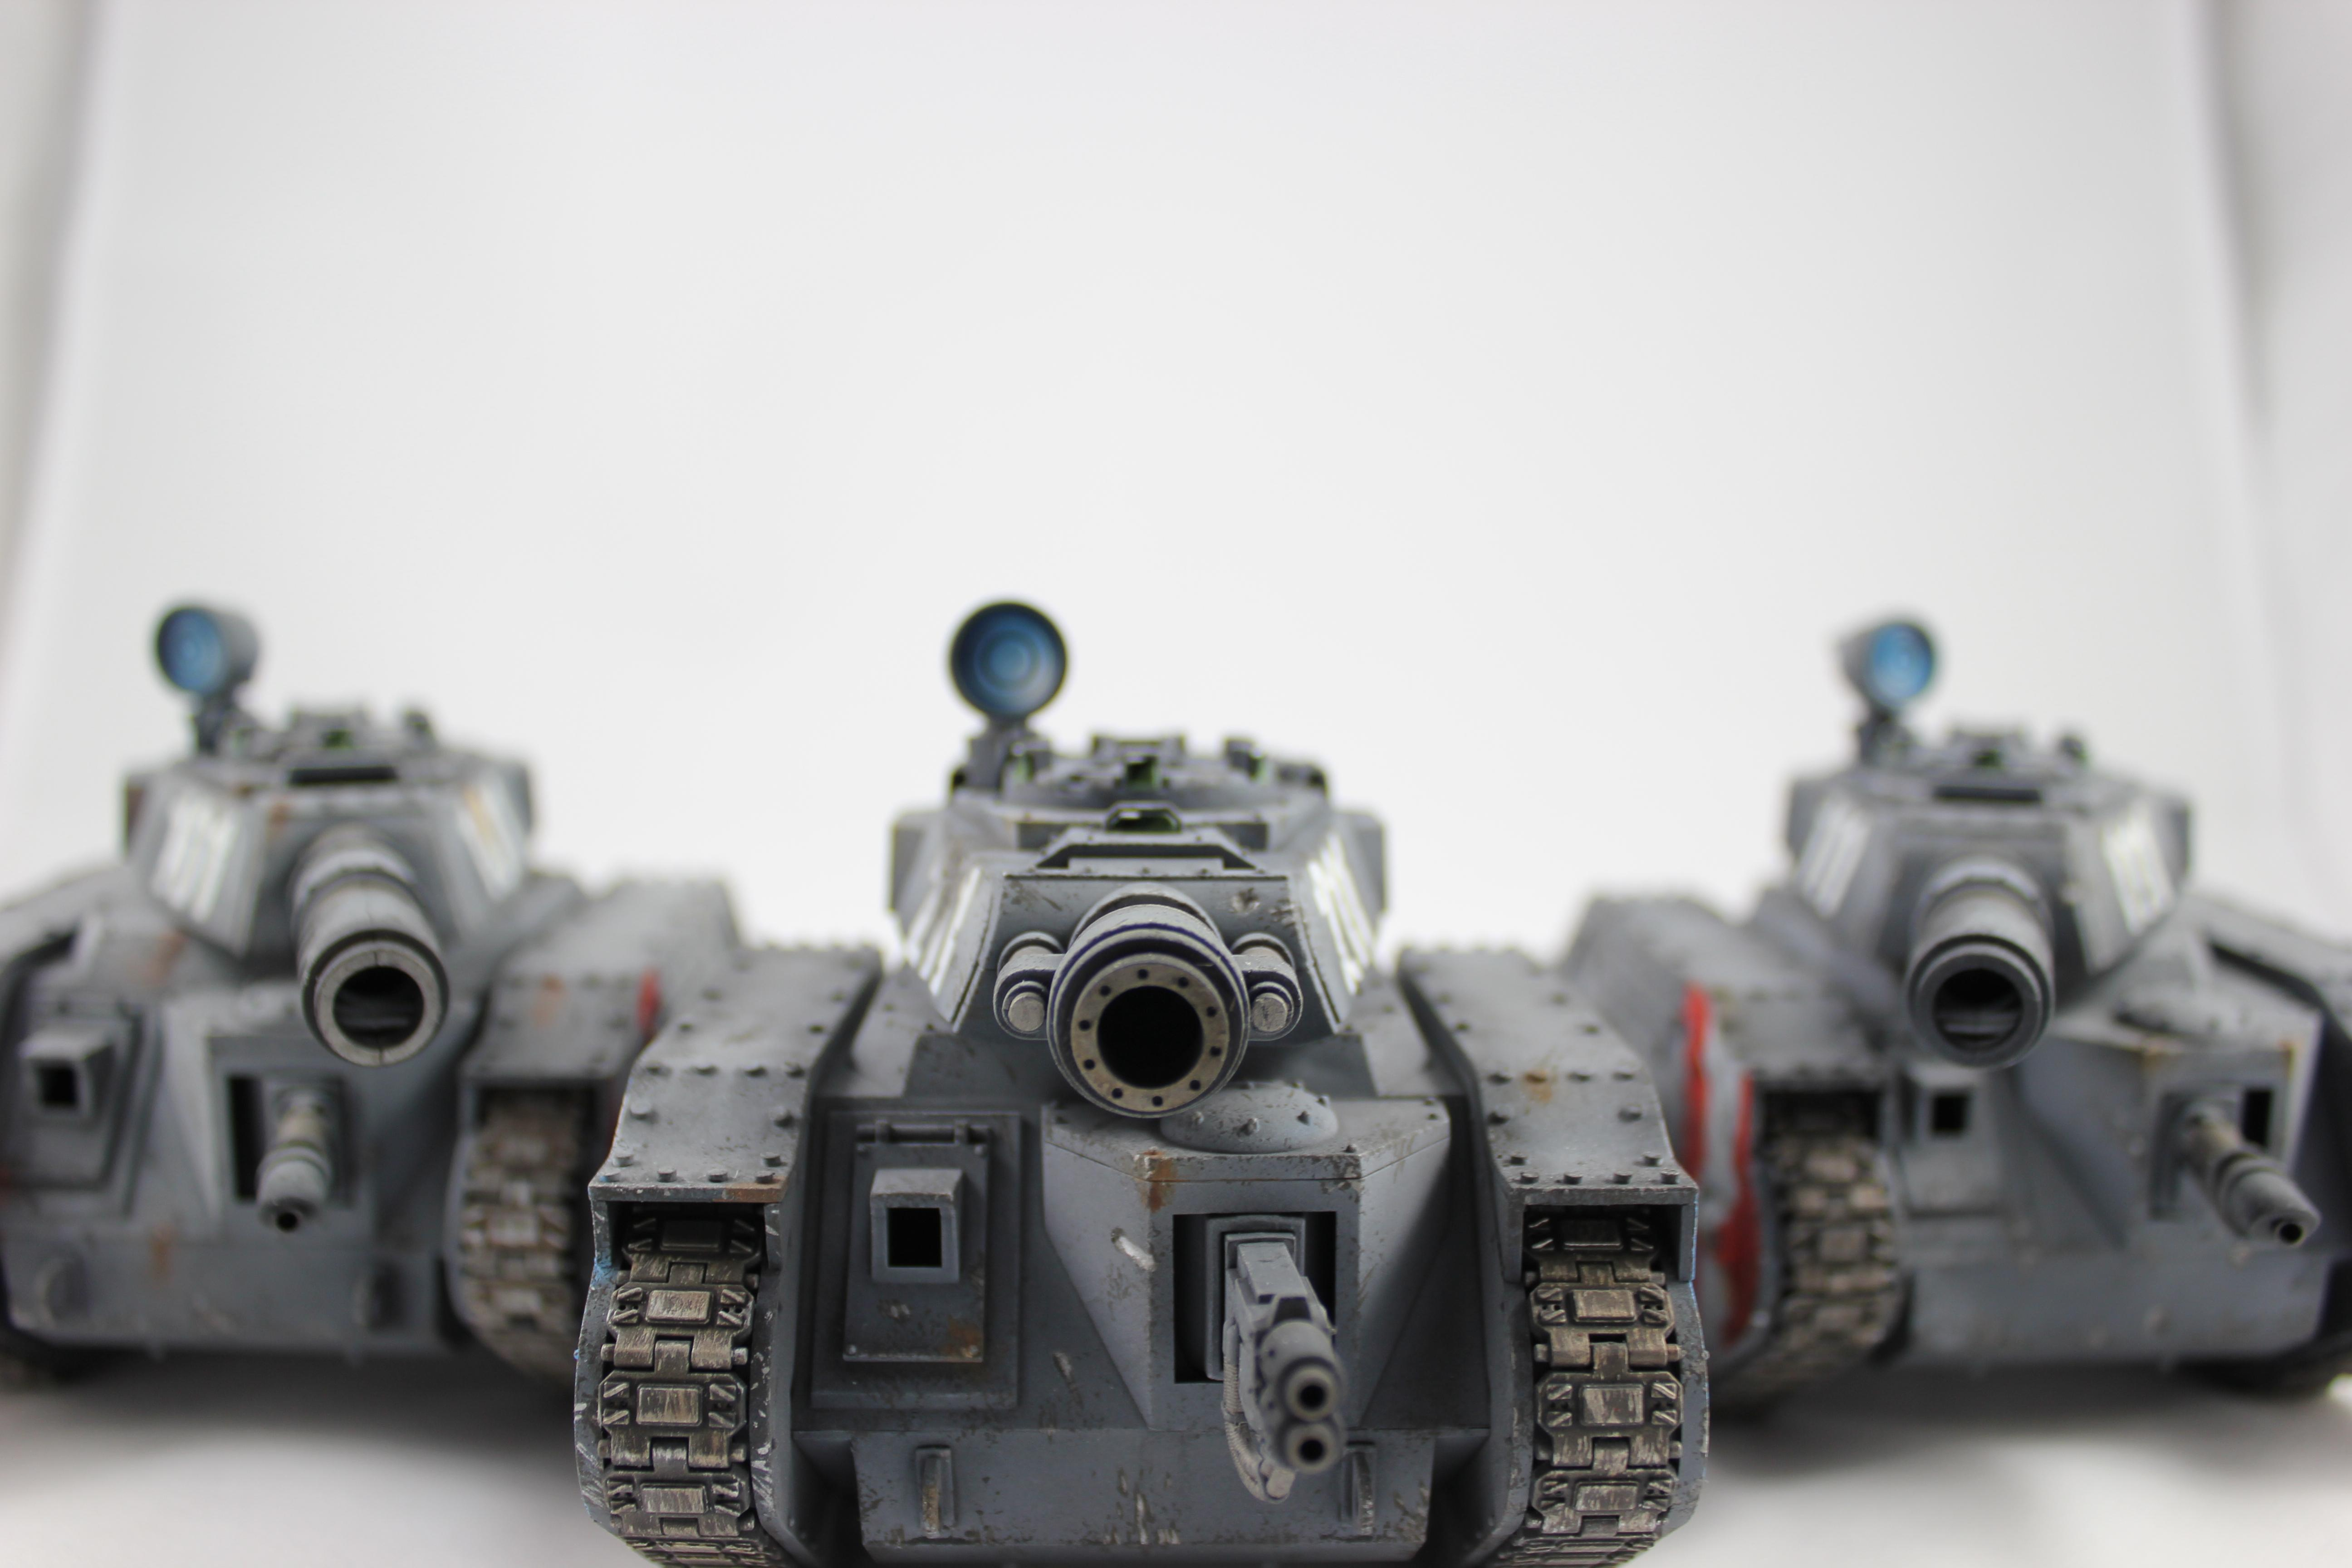 Airbrush, Armor, Camouflage, Cities Of Death, Guard, Imperial Guard, Leman Russ, Tank, Urban